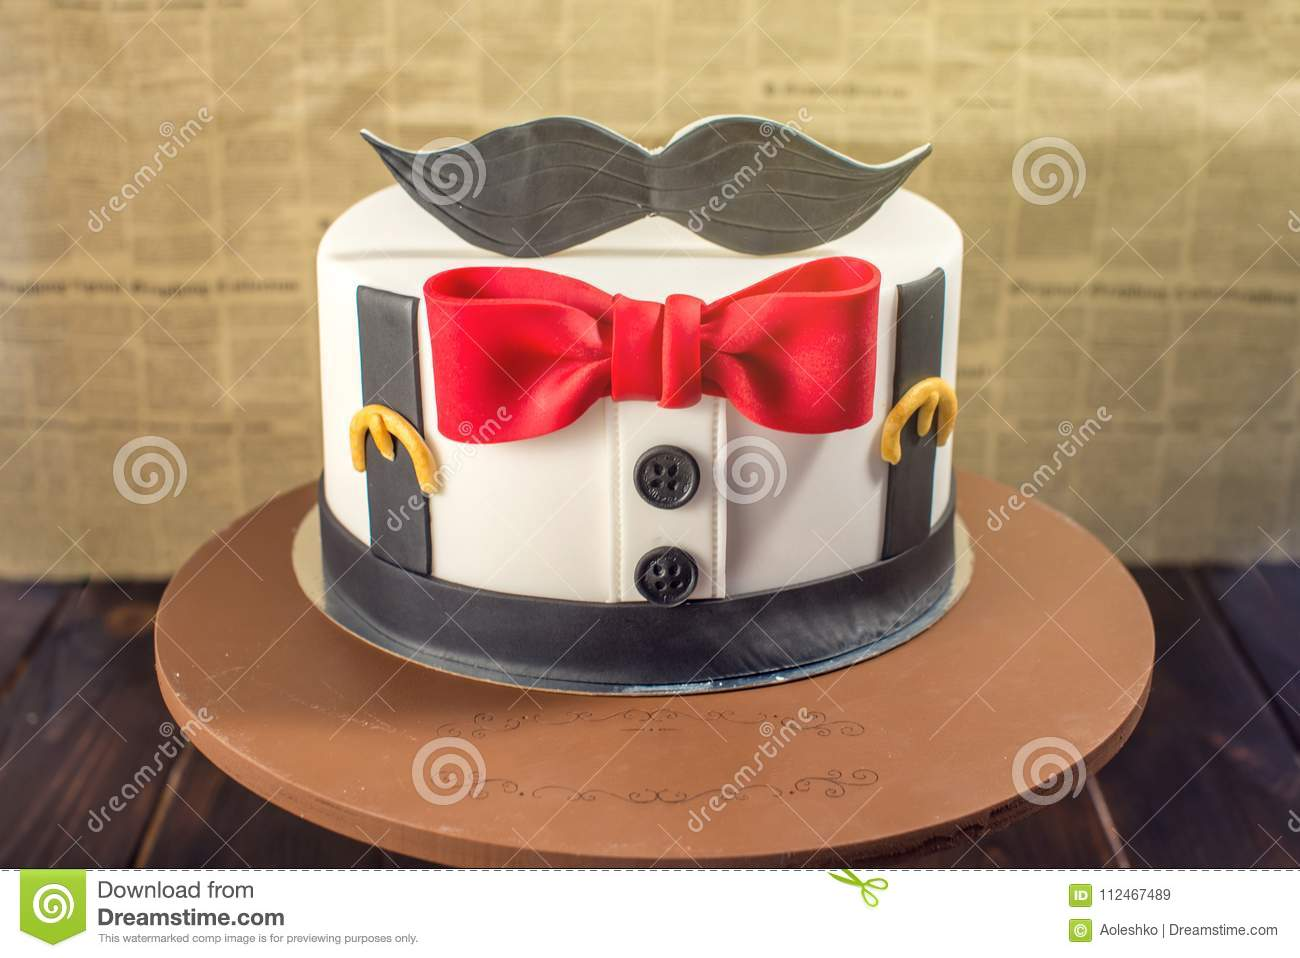 Beautiful Cake For Men Decorated In The Form Of A Suit